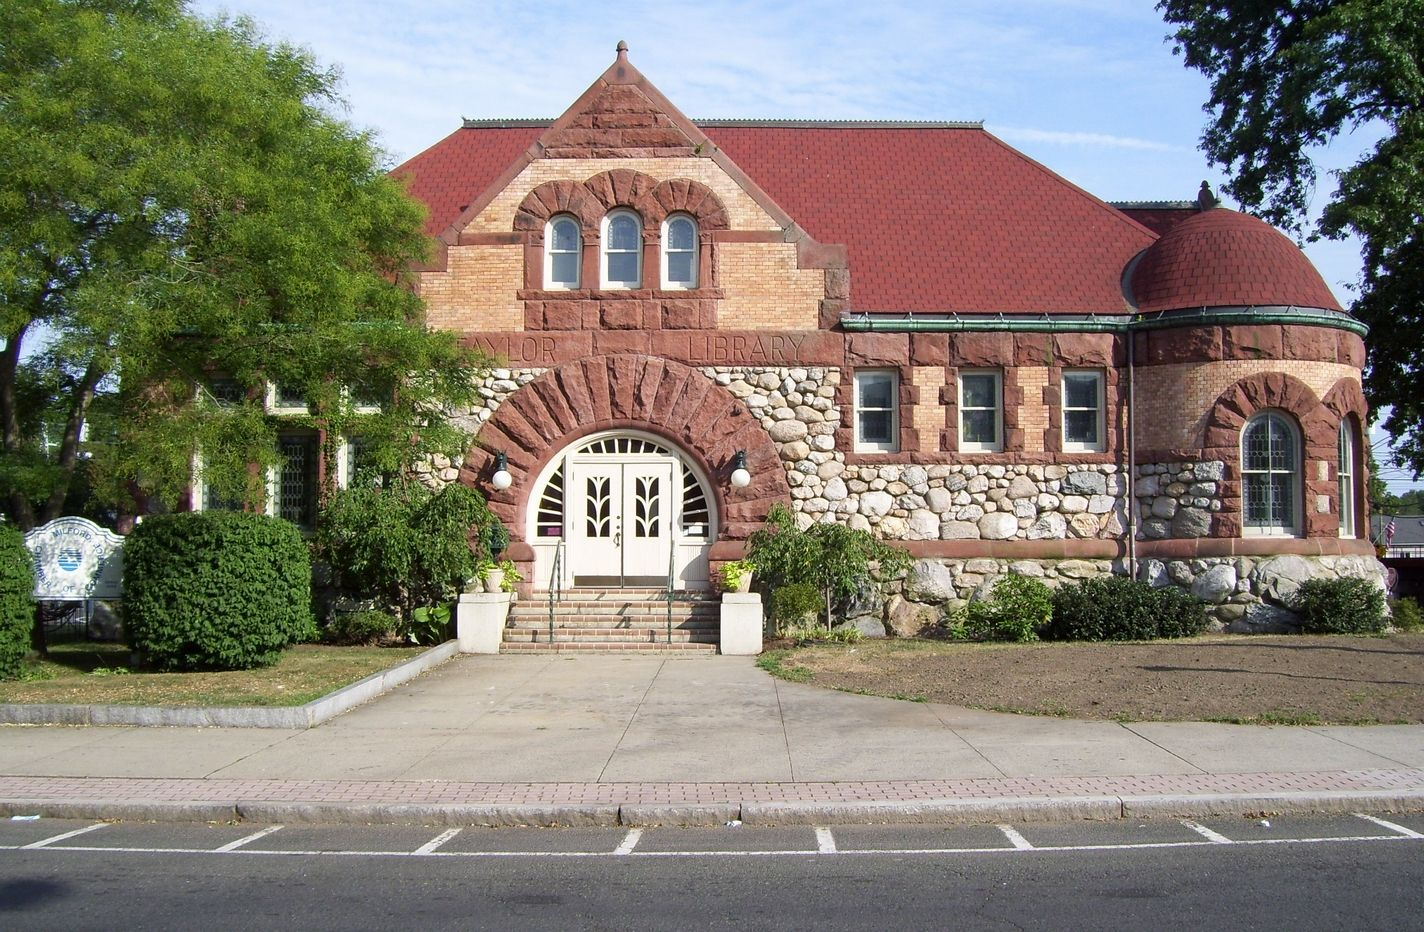 Old Taylor Library, Milford, CT